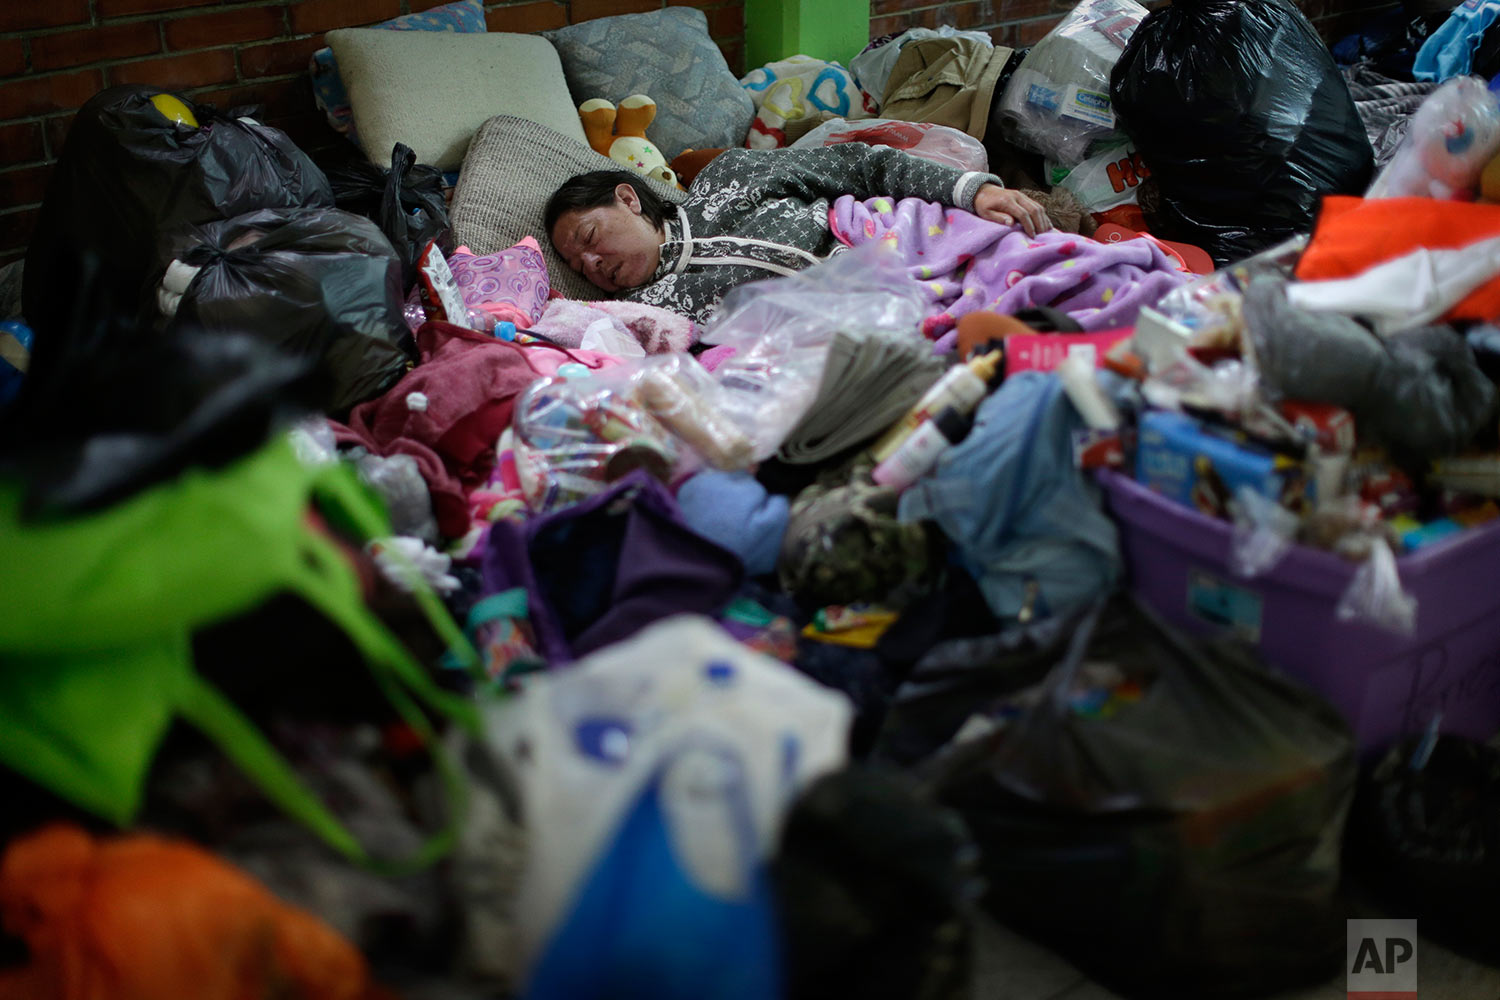 A woman sleeps at the Francisco Kino school, which was turned into a temporary shelter for residents evacuated from the large apartment complex, in the Tlalpan neighborhood of Mexico City, Monday, Sept. 25, 2017.  (AP Photo/Natacha Pisarenko)